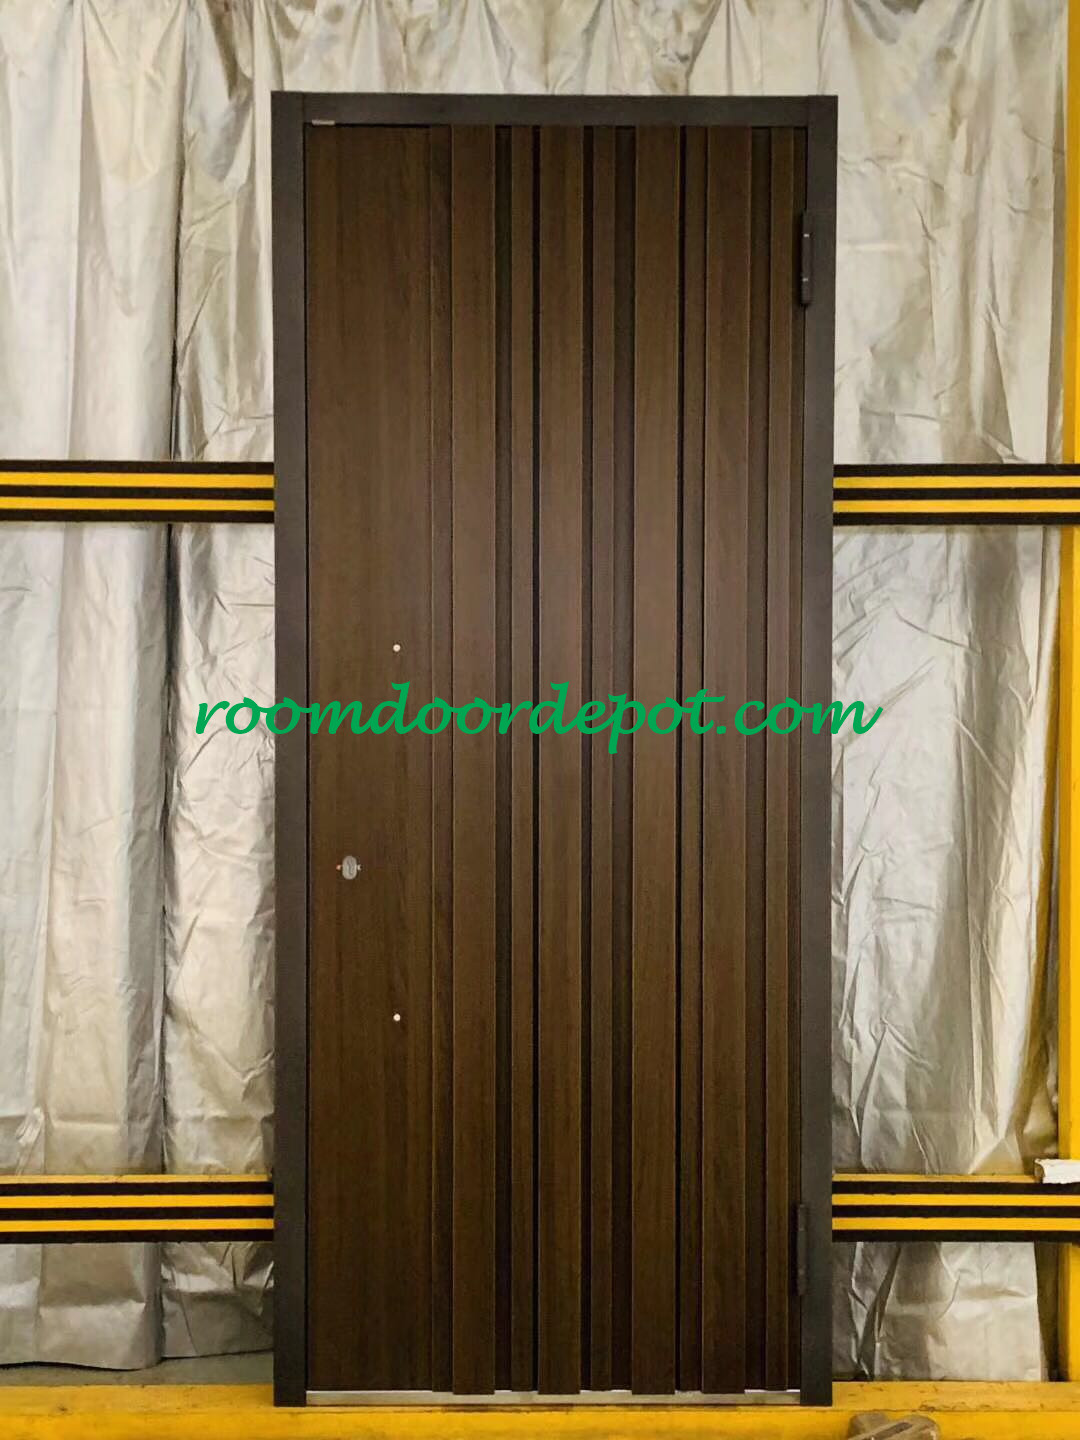 High quality steel security entry doors in modern design